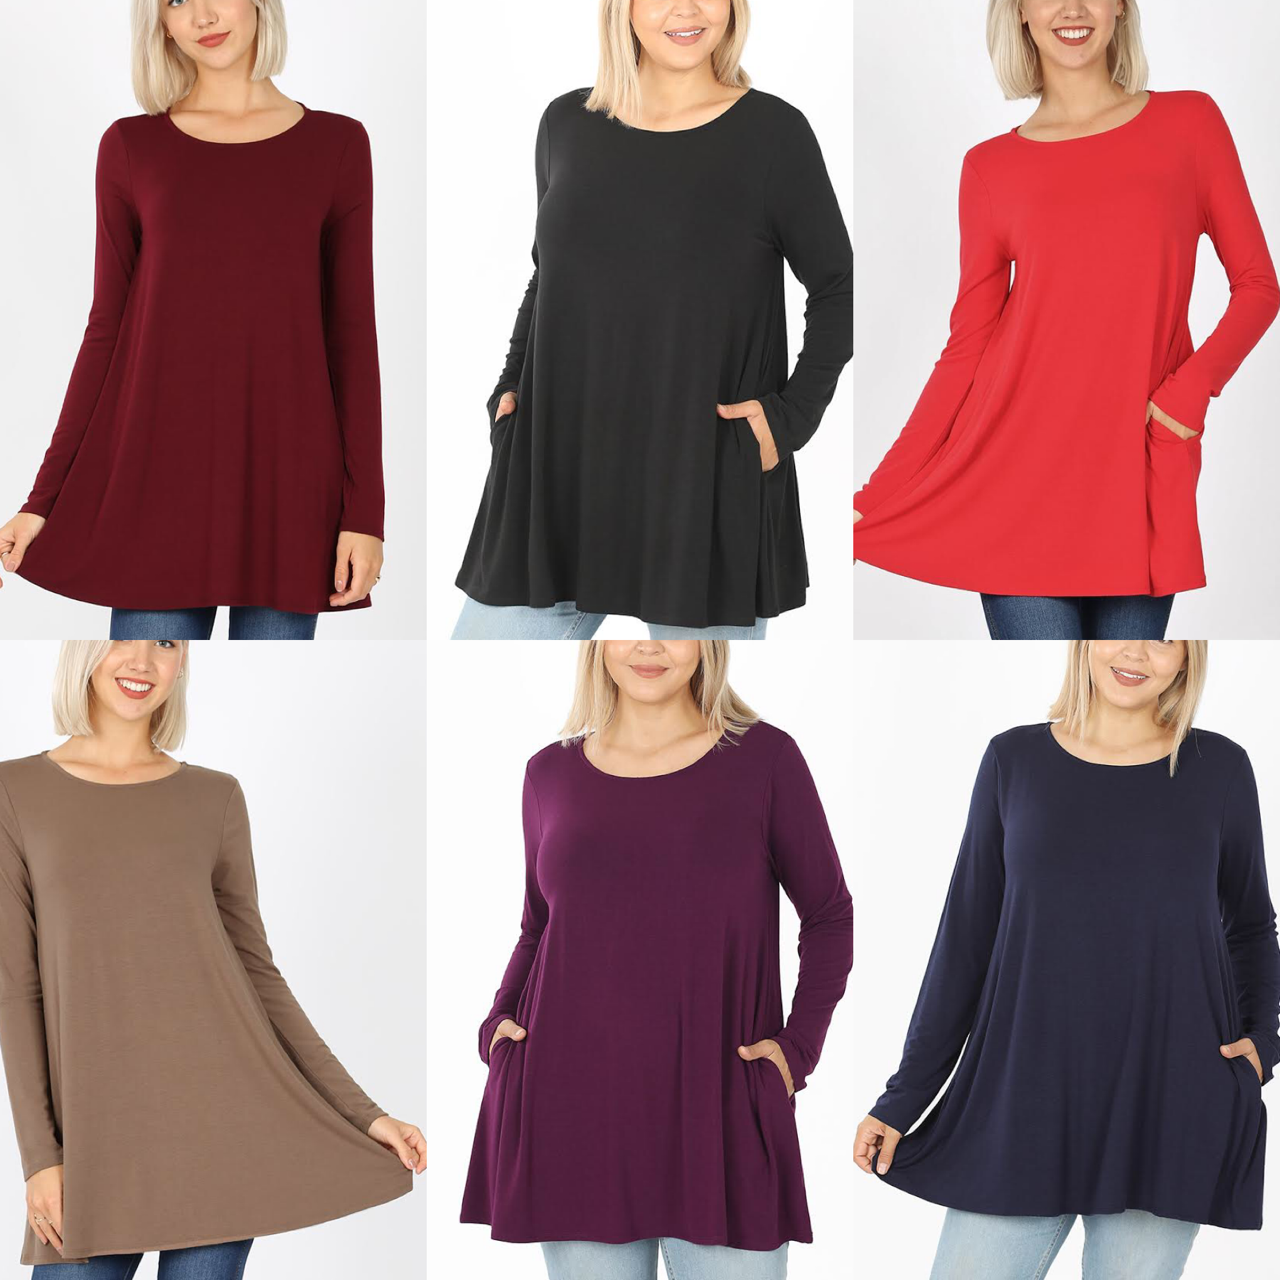 flared tee, long sleeve, solid colors, shirt, clothing, fashion, pockets